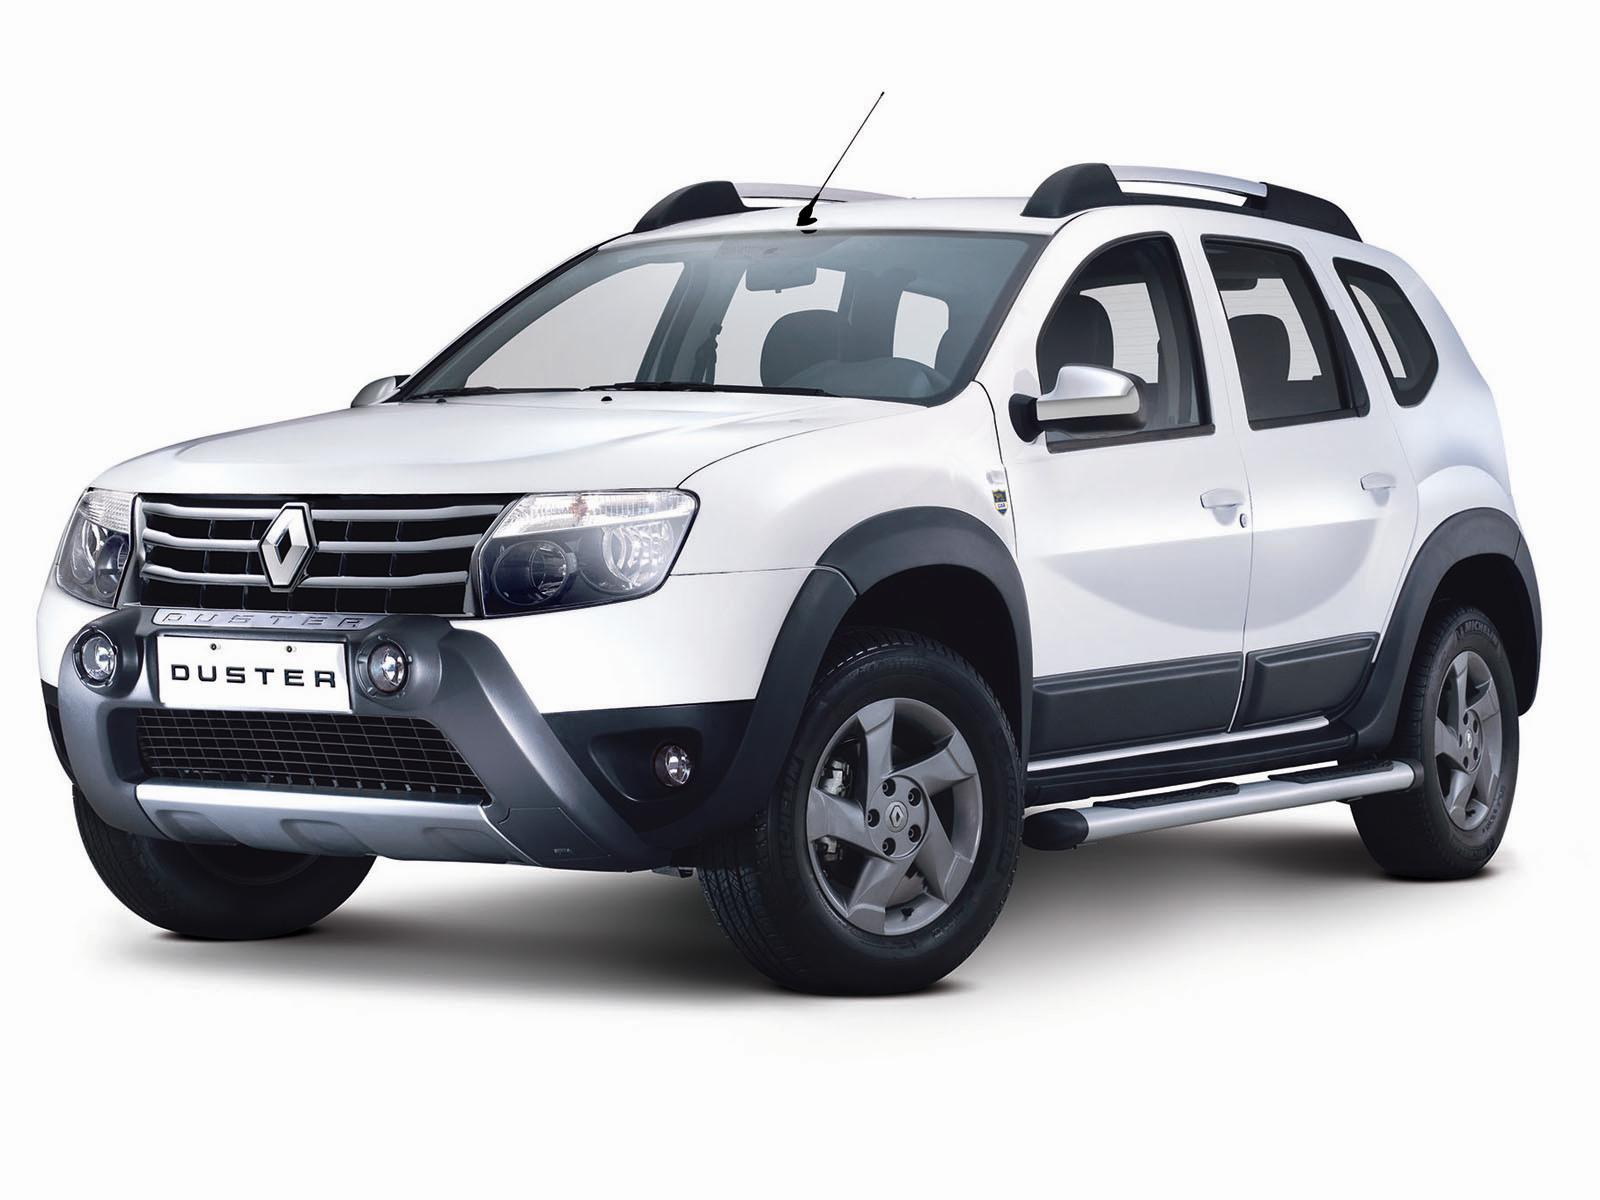 Superior Renault Duster will present in 2018 year